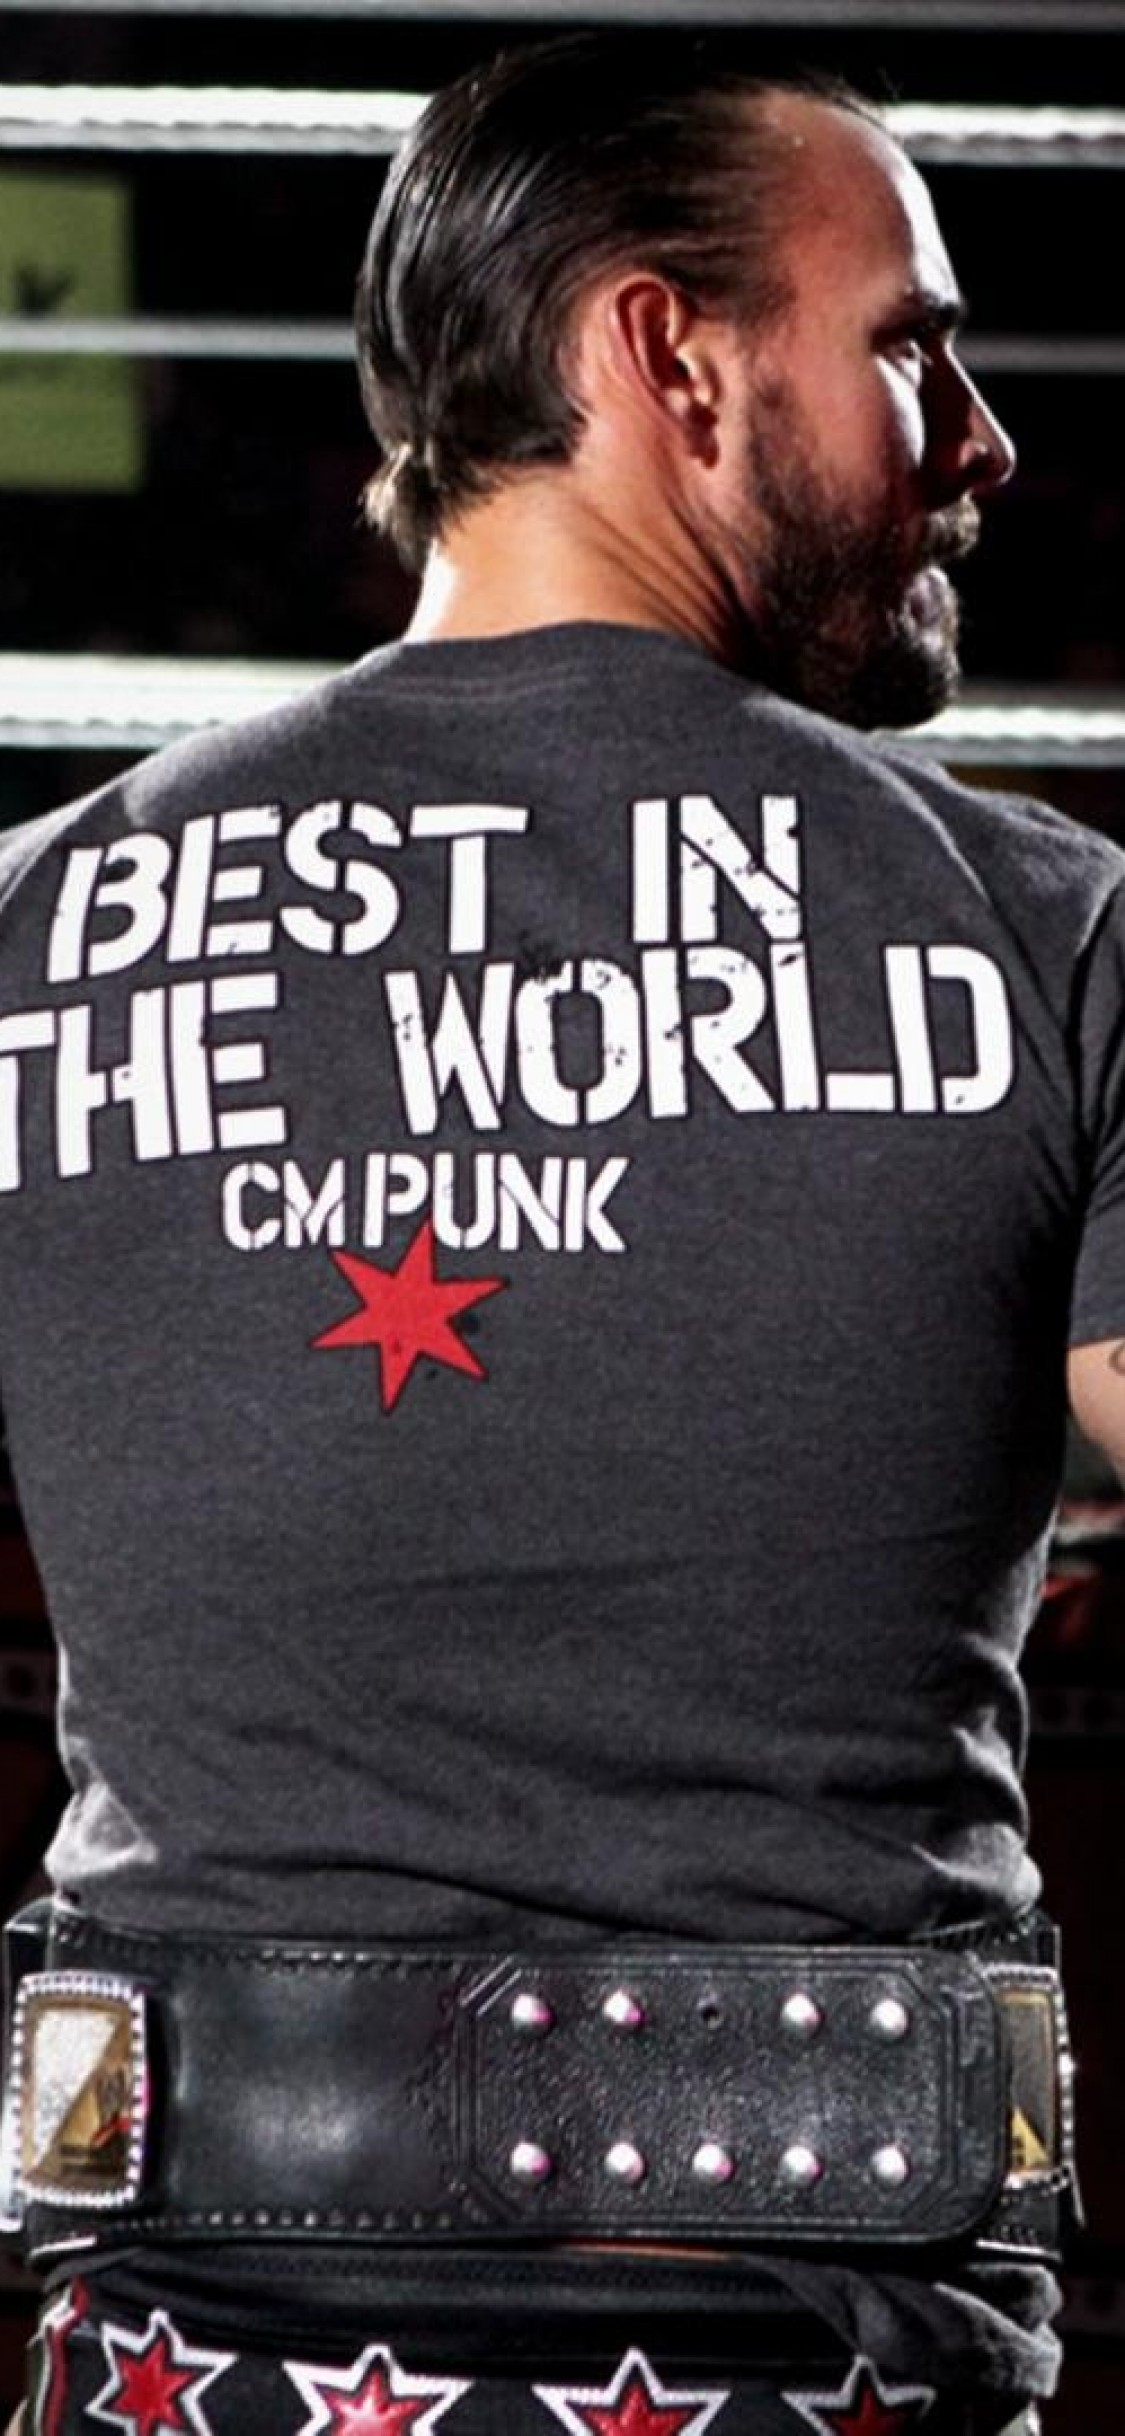 Cmpunk Wallpaper Posted By Ethan Tremblay